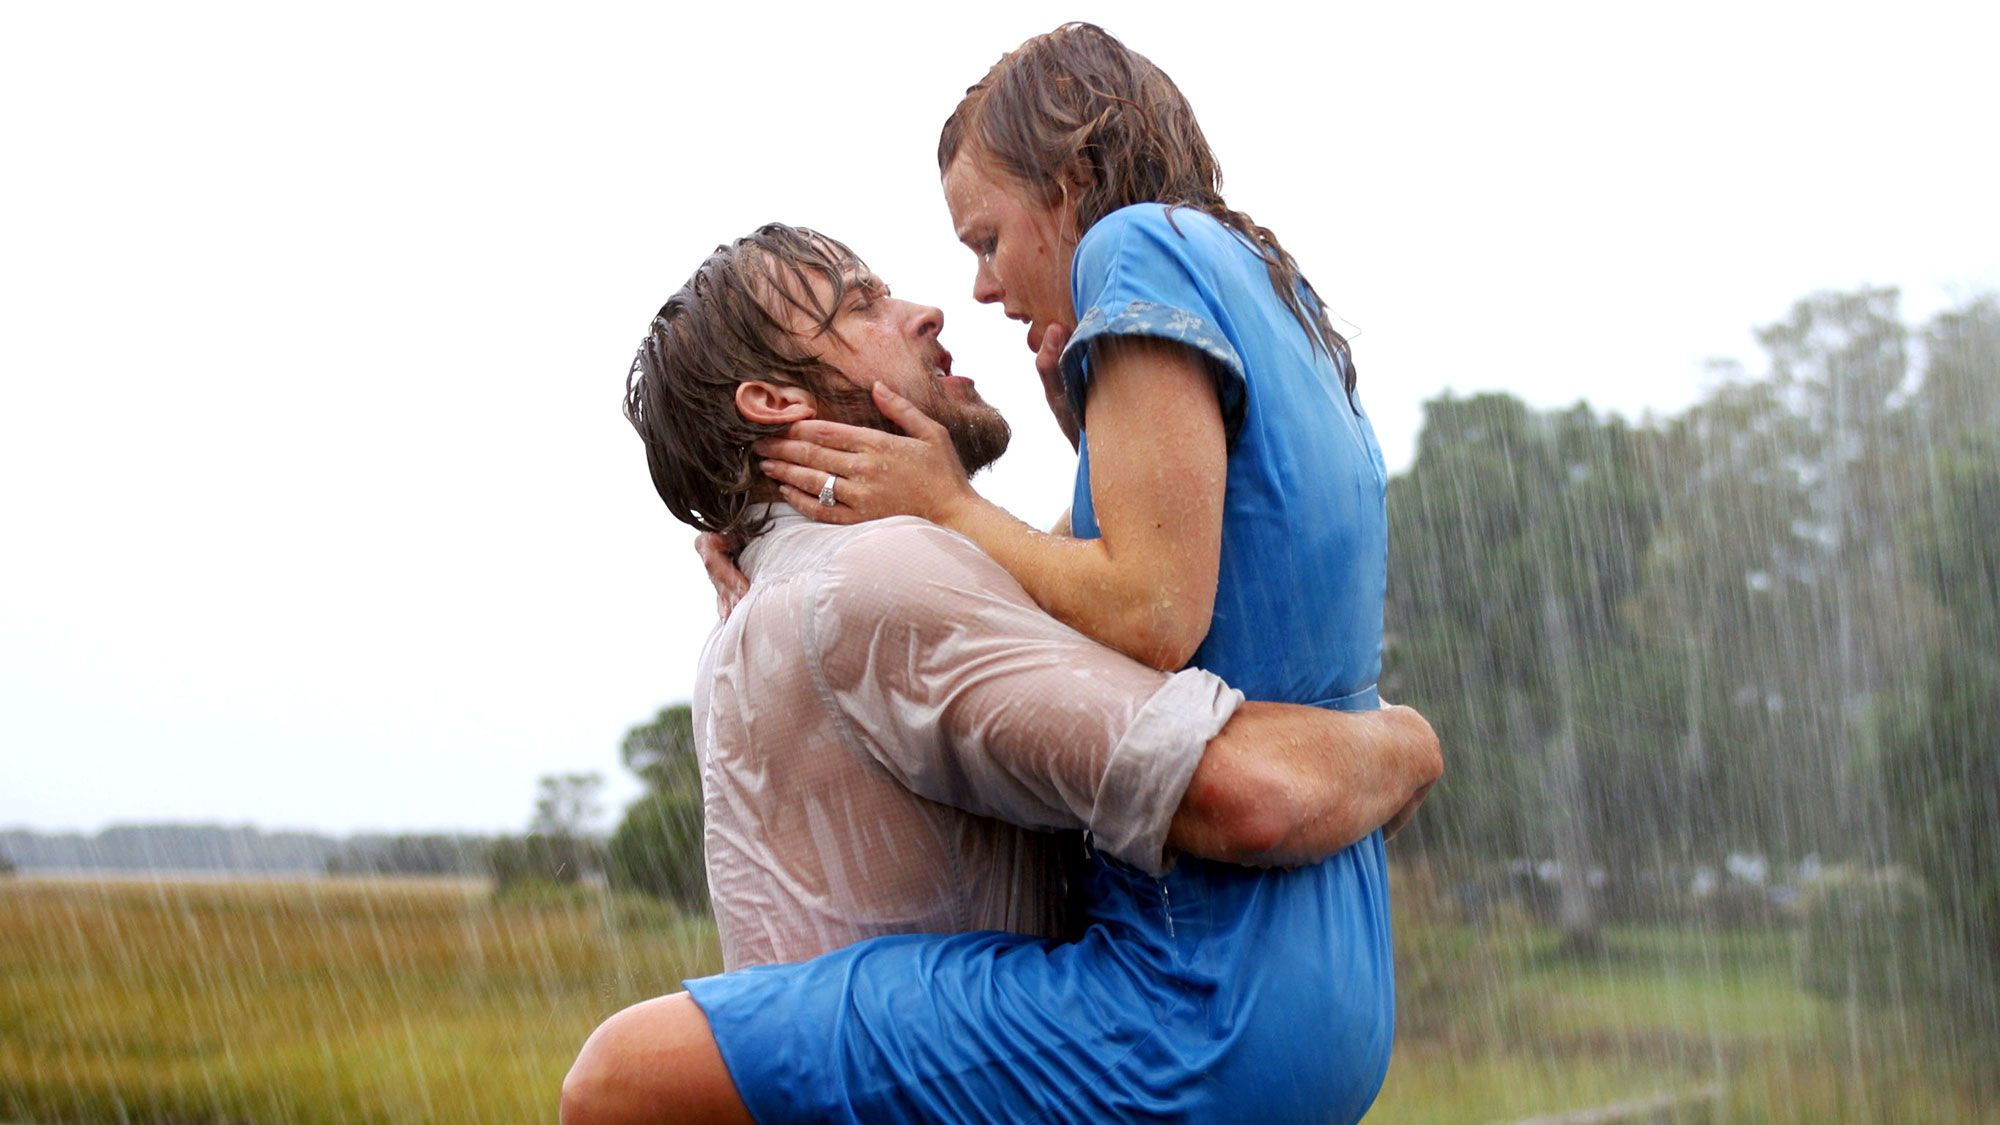 The Notebook's Top 10 Quotable Quotes